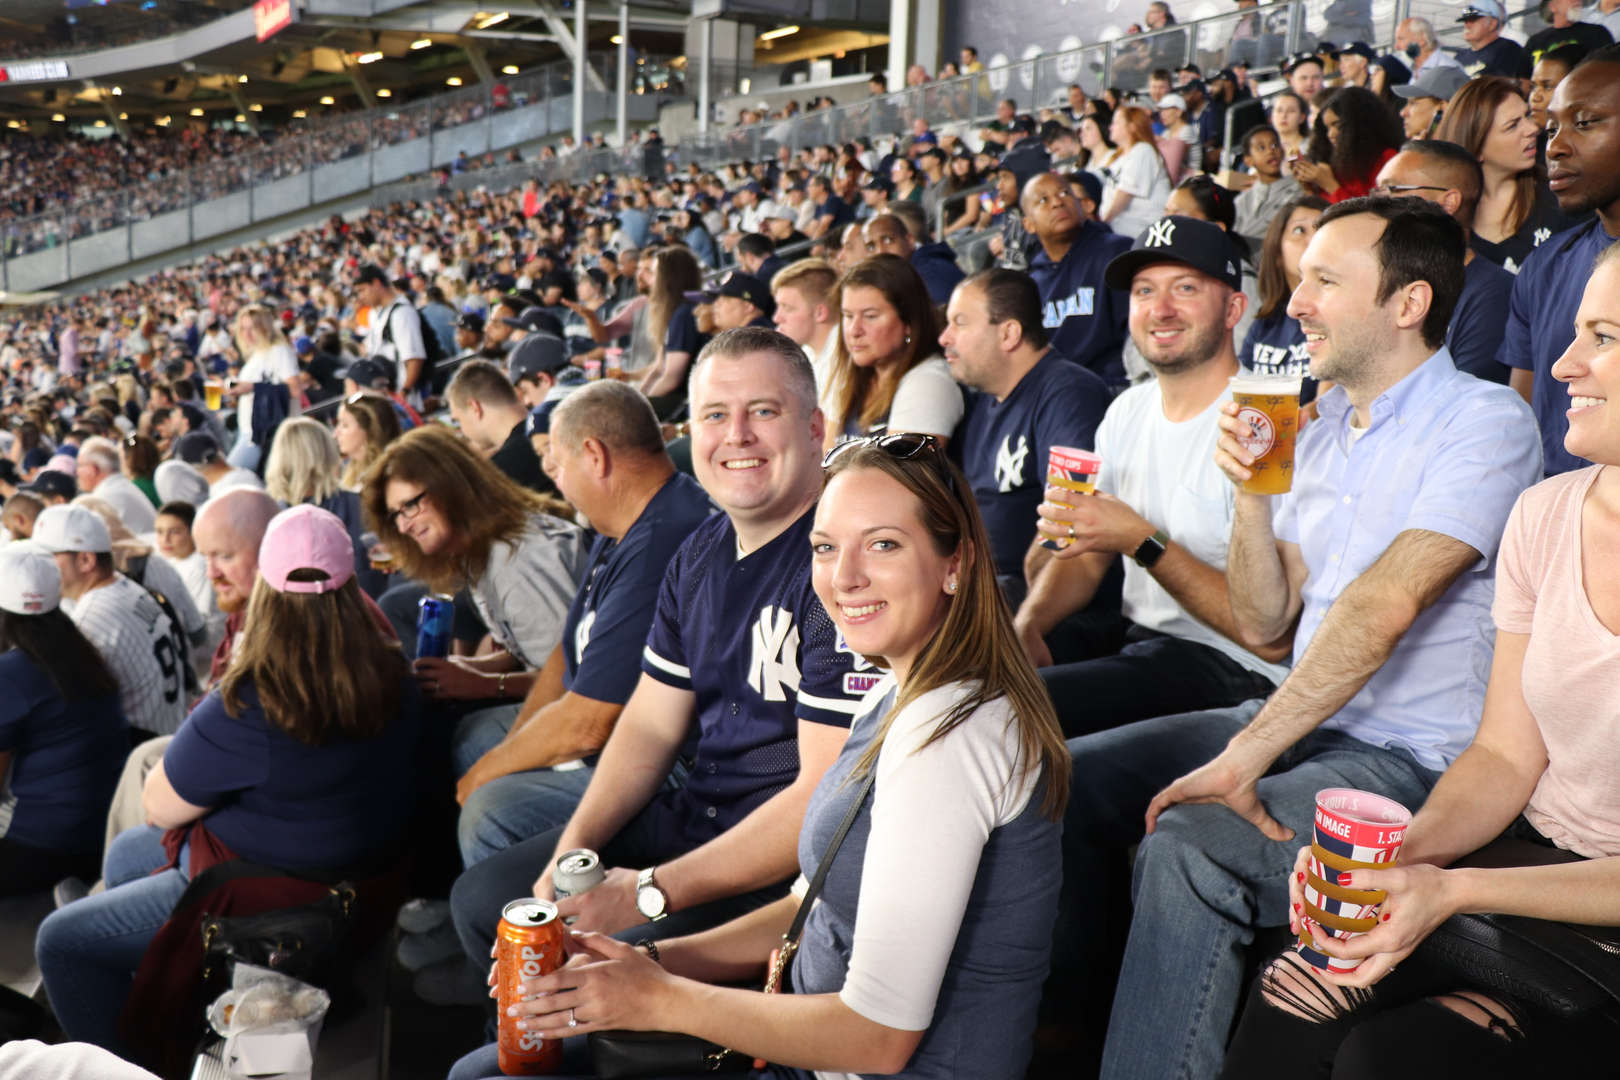 PS 152 staff at the New York Yankees game.